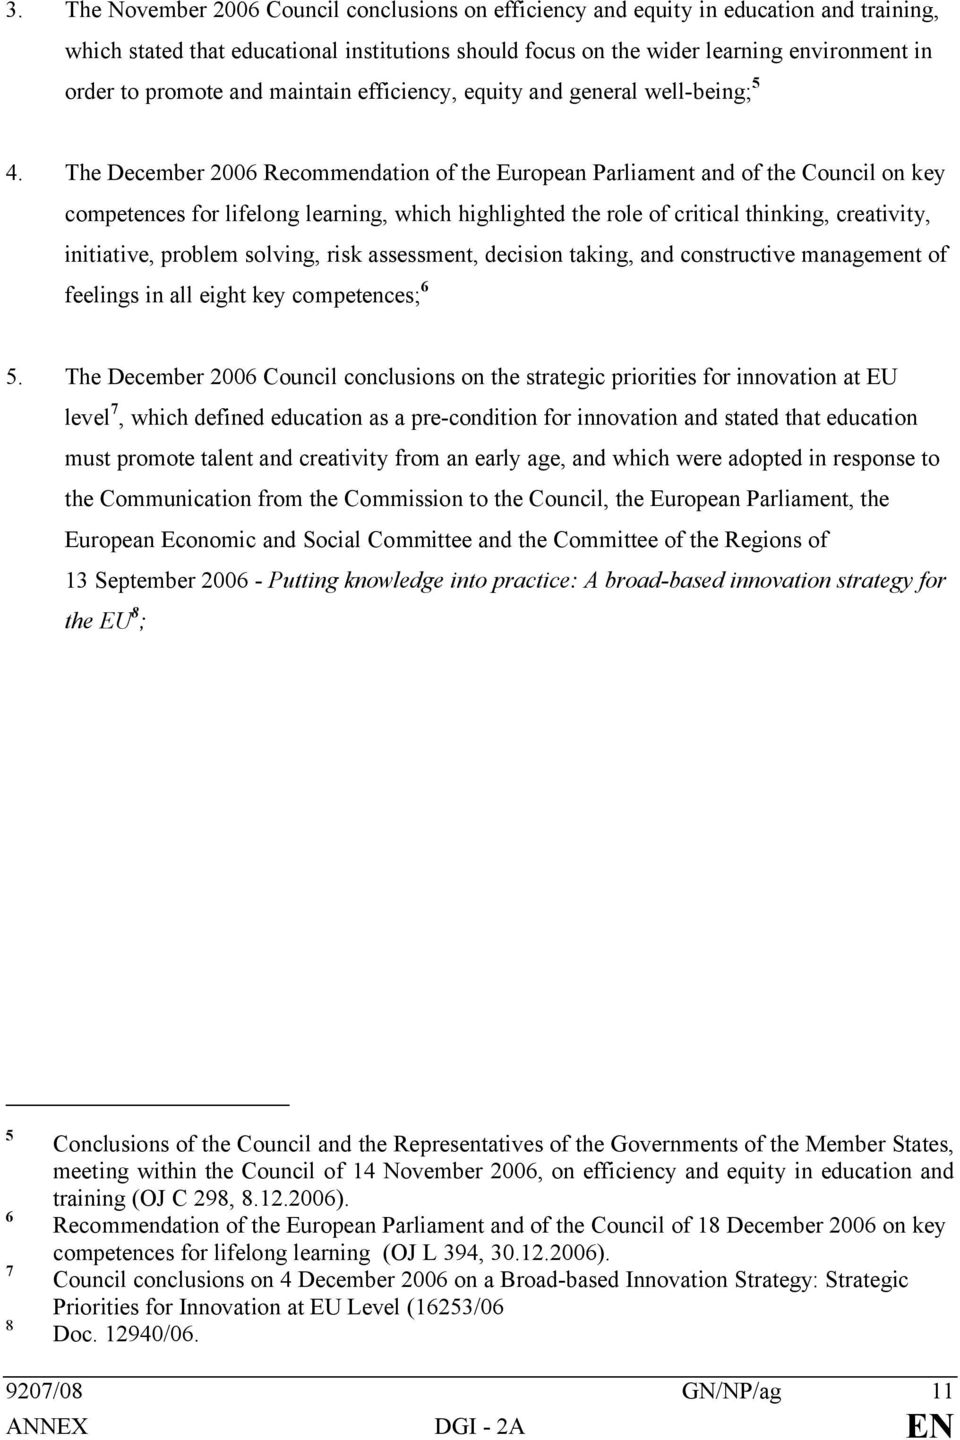 The December 2006 Recommendation of the European Parliament and of the Council on key competences for lifelong learning, which highlighted the role of critical thinking, creativity, initiative,